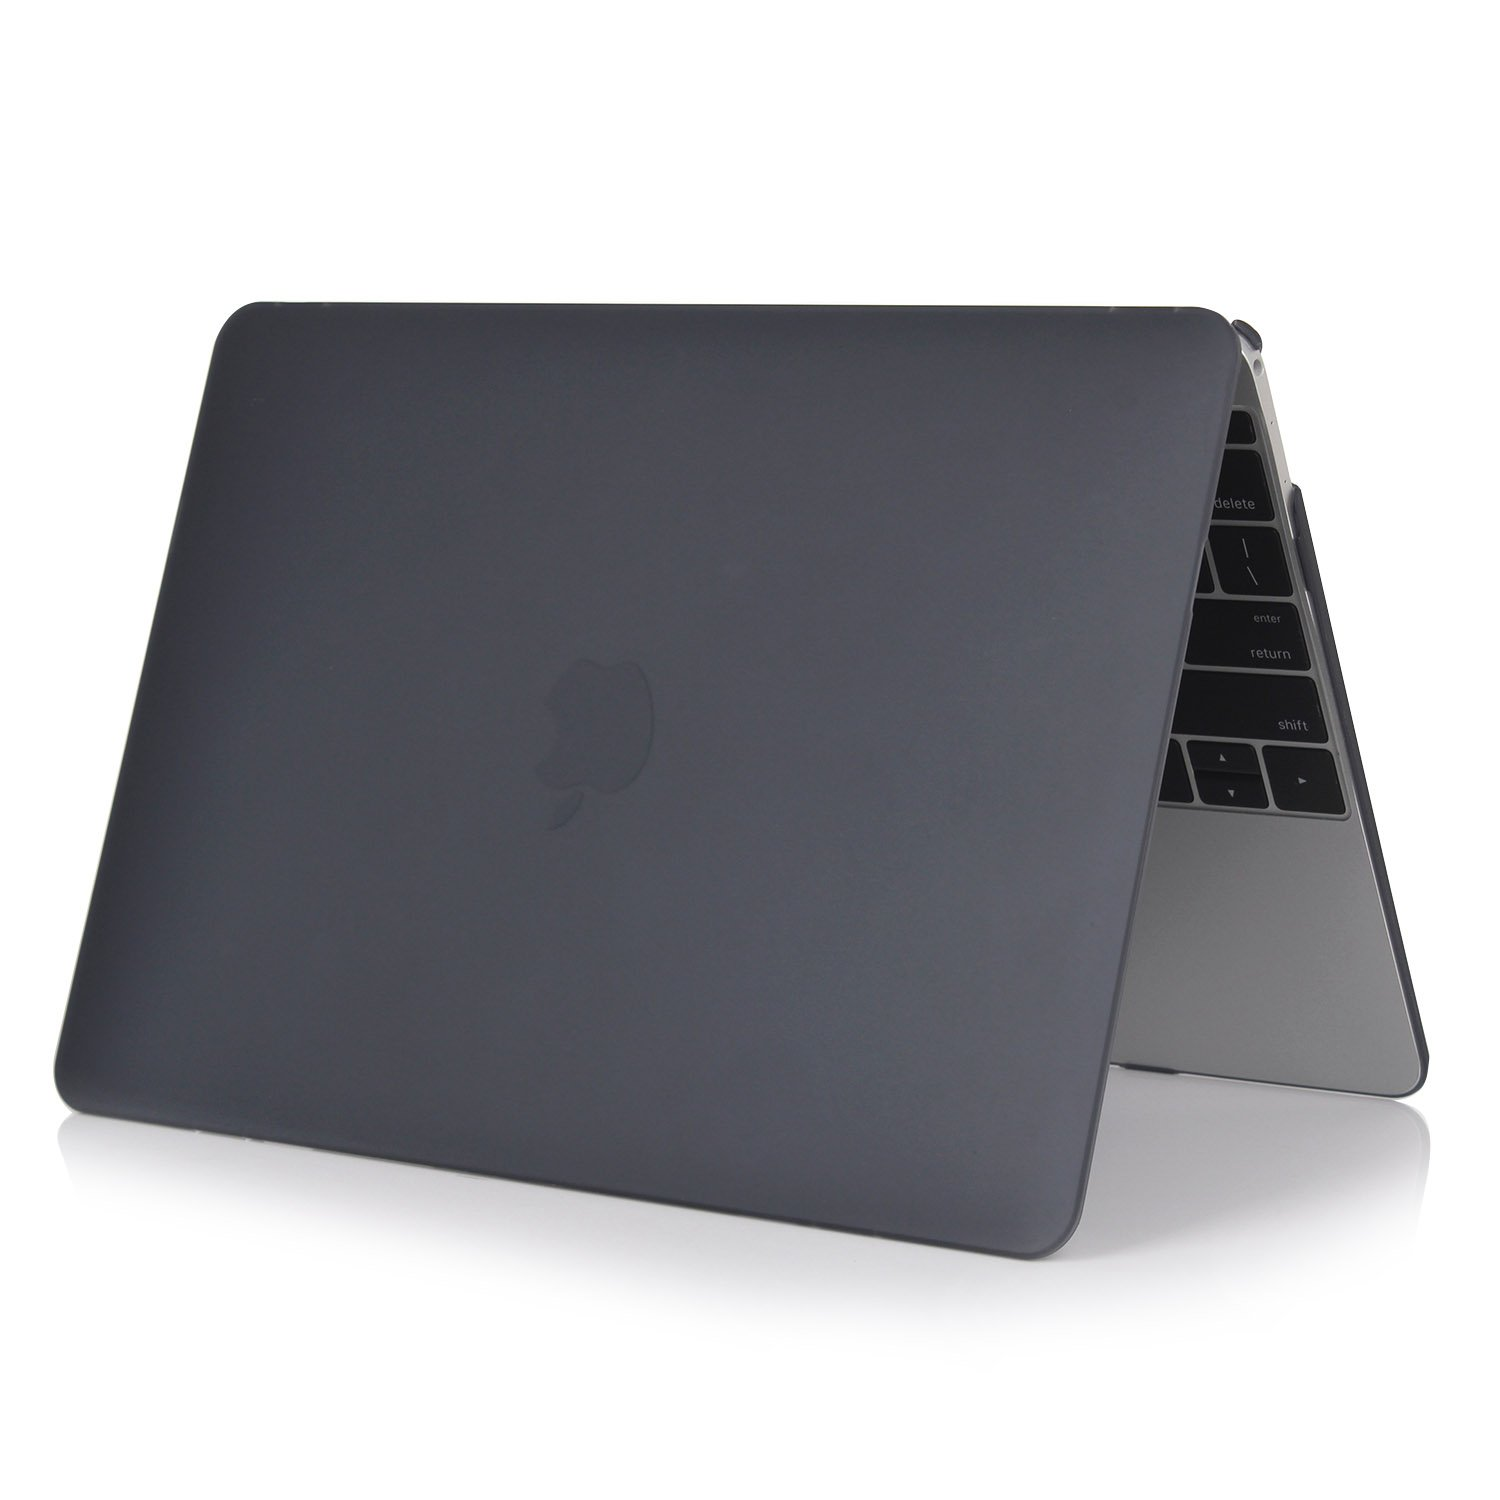 "13.3"" MOSISO BLACK Matte Case for MacBook Air Laptop 9 COLORS FAST FREE SHIPPING USA"